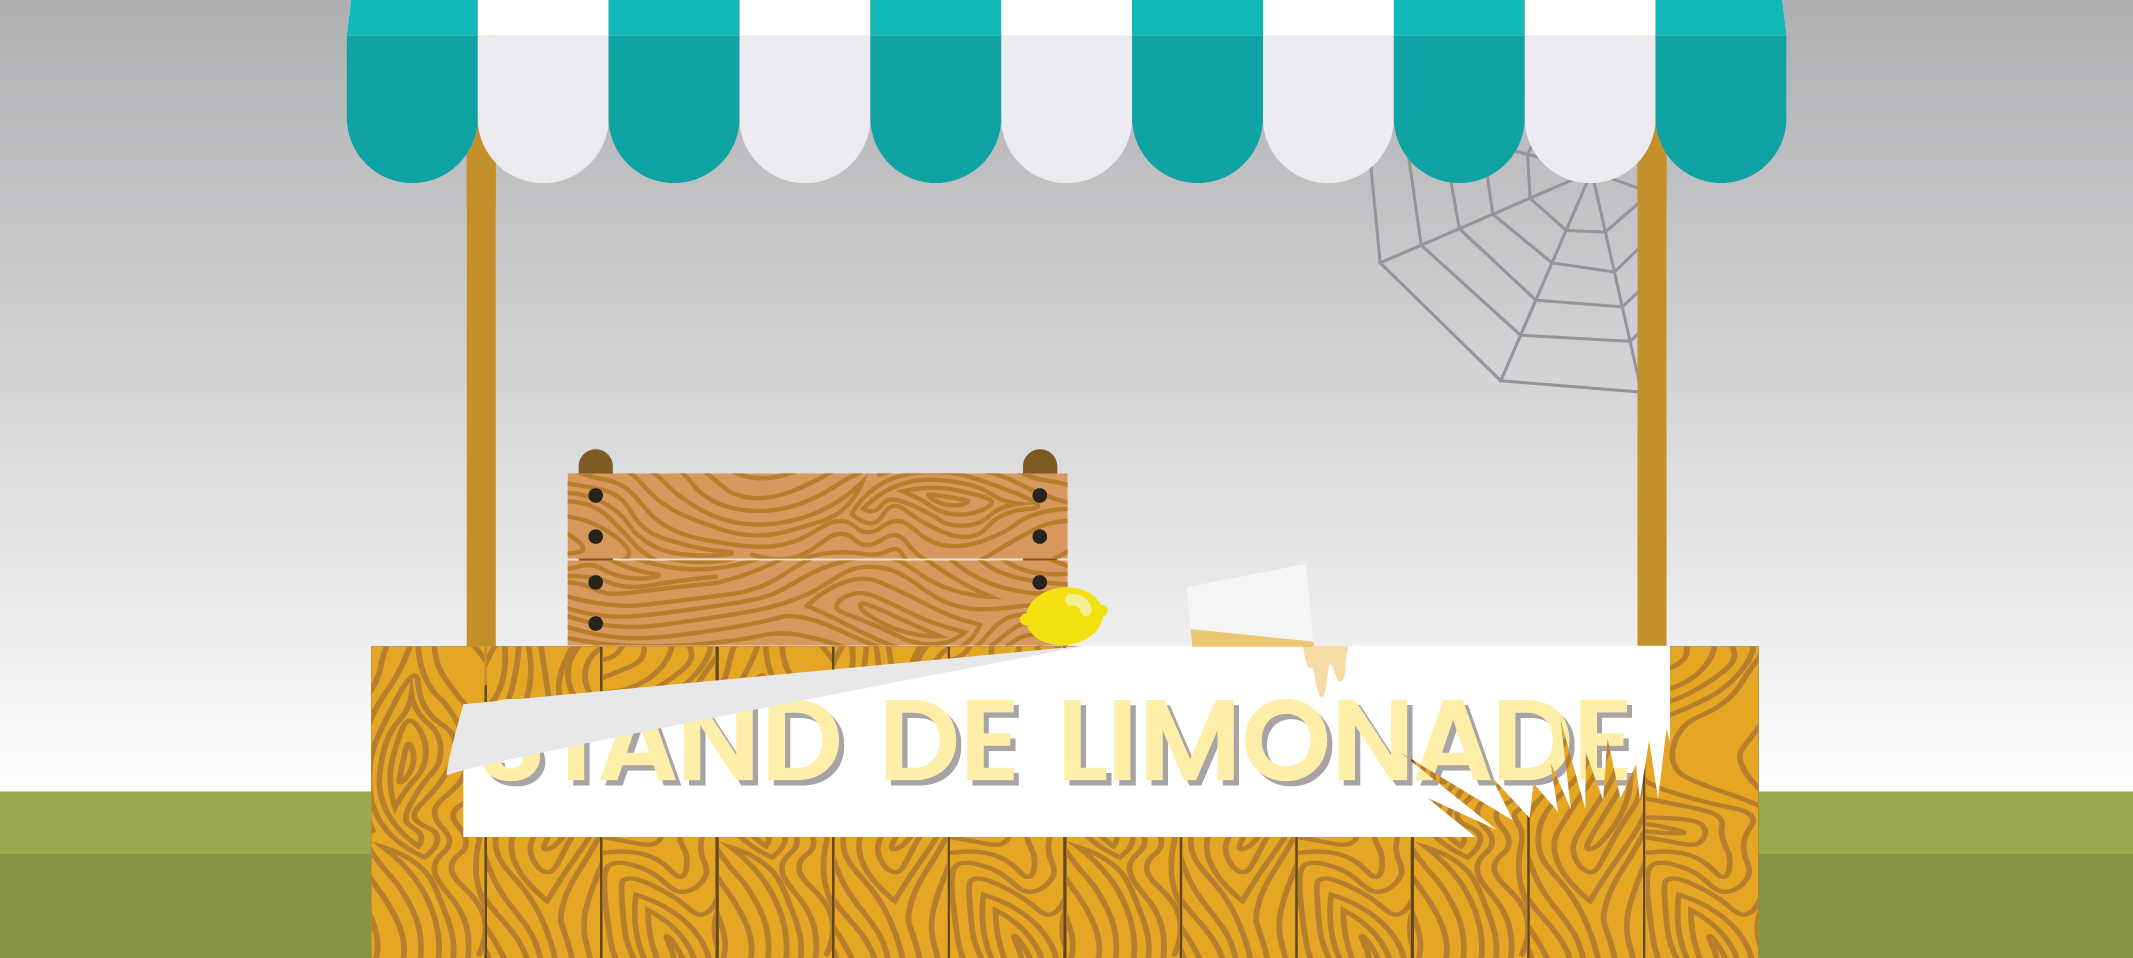 Limonade [In-Text - Entrepreneur Stand]